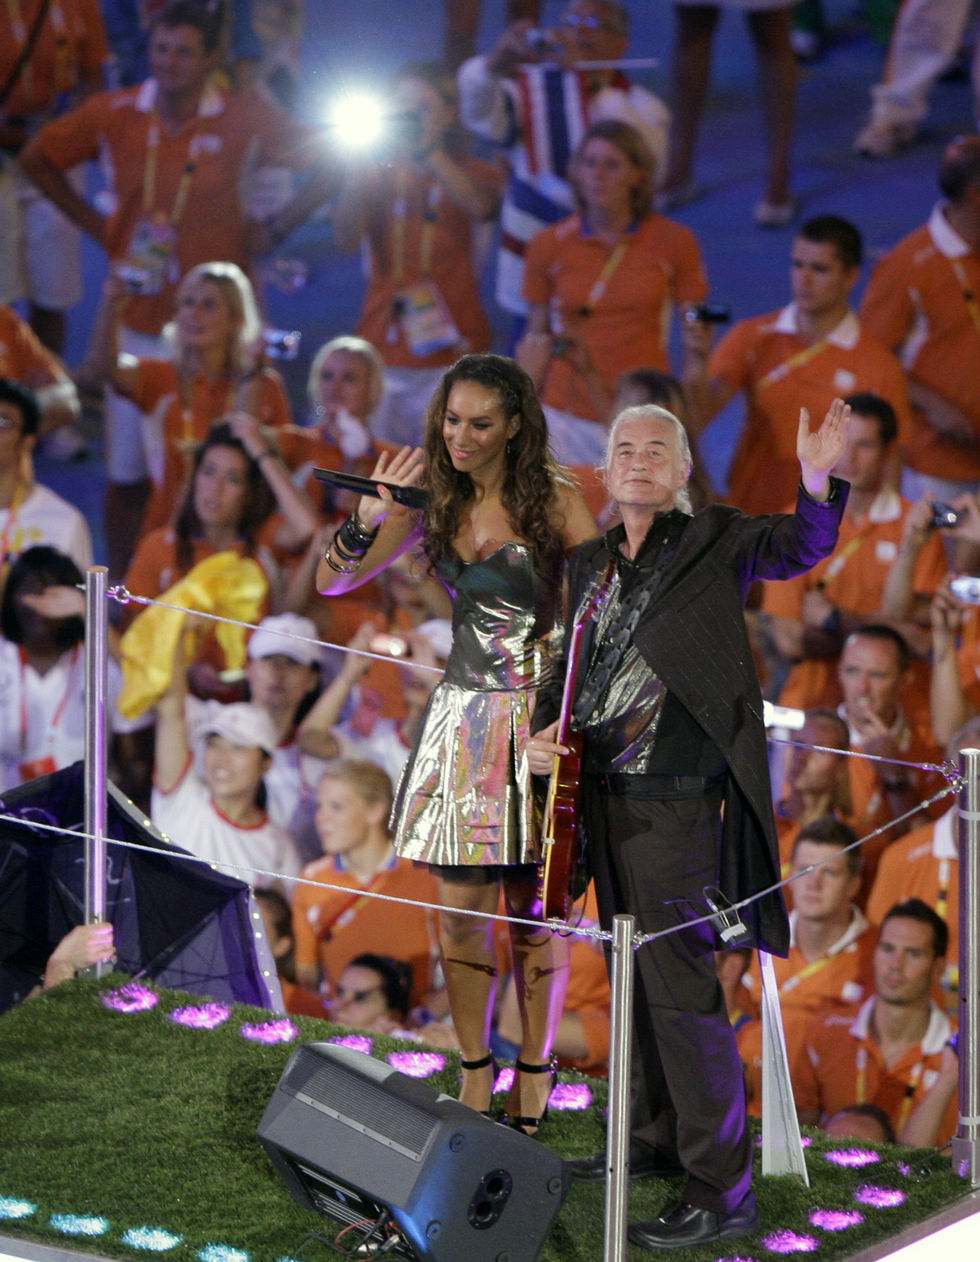 leona-lewis-performs-at-the-closing-ceremony-for-the-beijing-2008-olympic-games-12